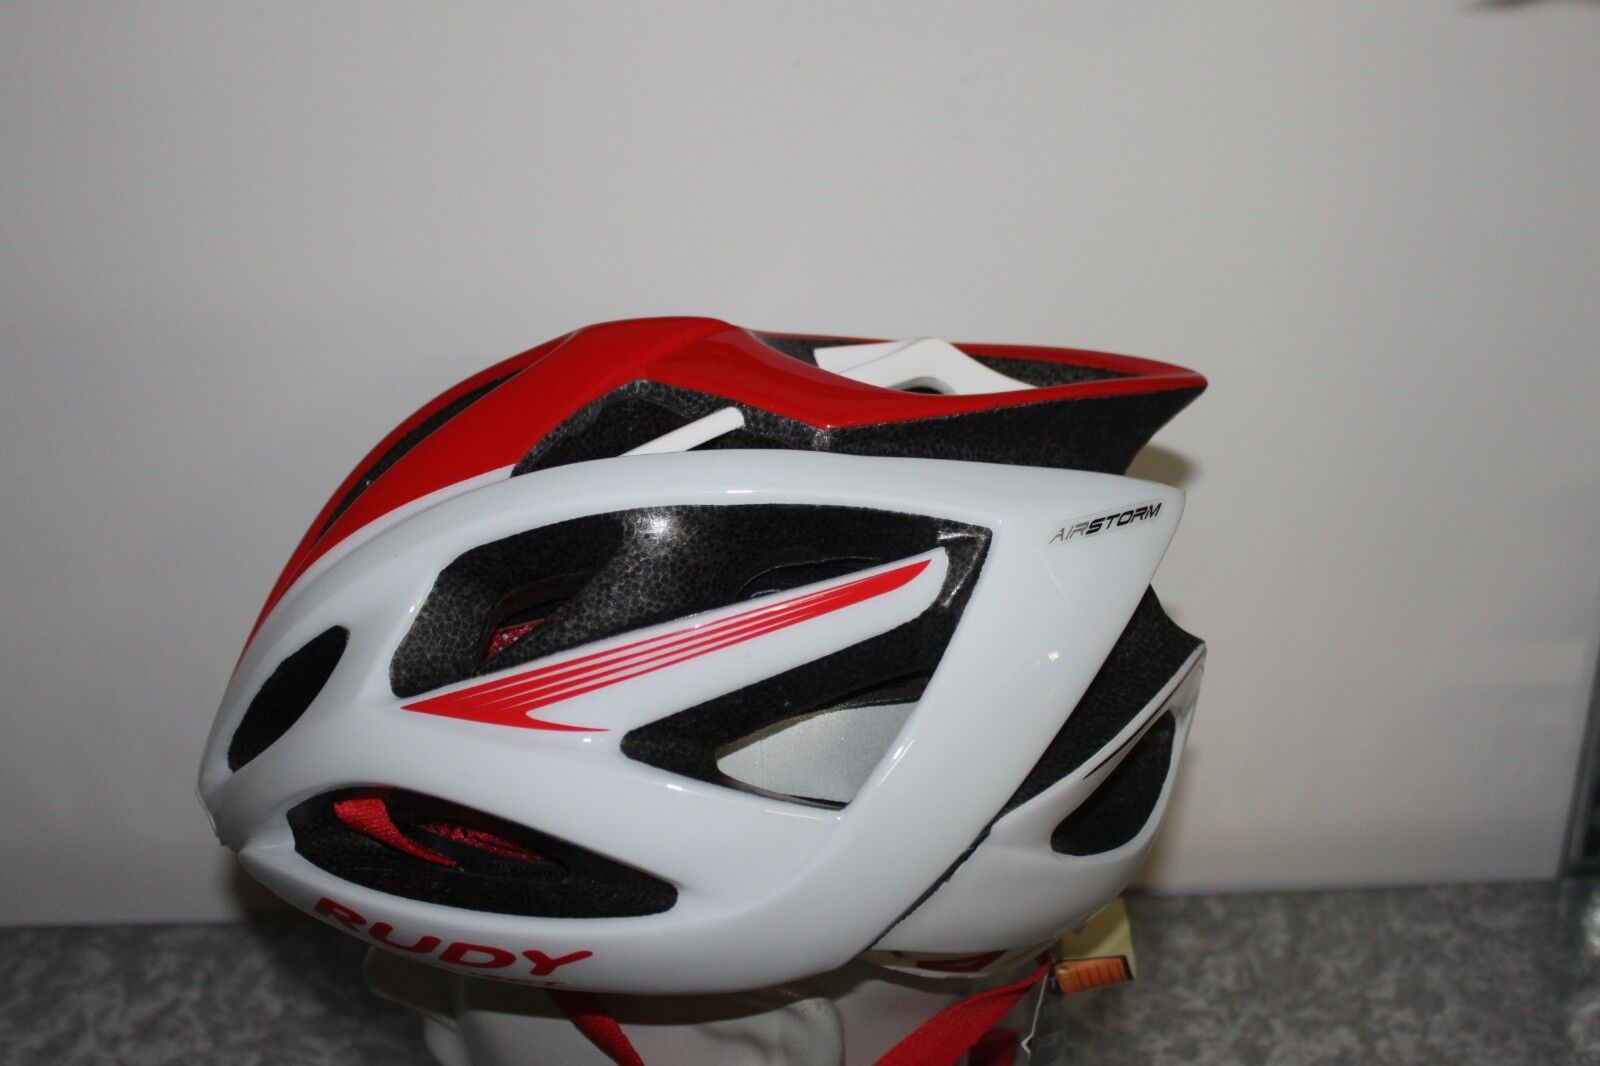 Rudy Project Airstorm Radhelm - Shiny red  Size L 59-61 cm